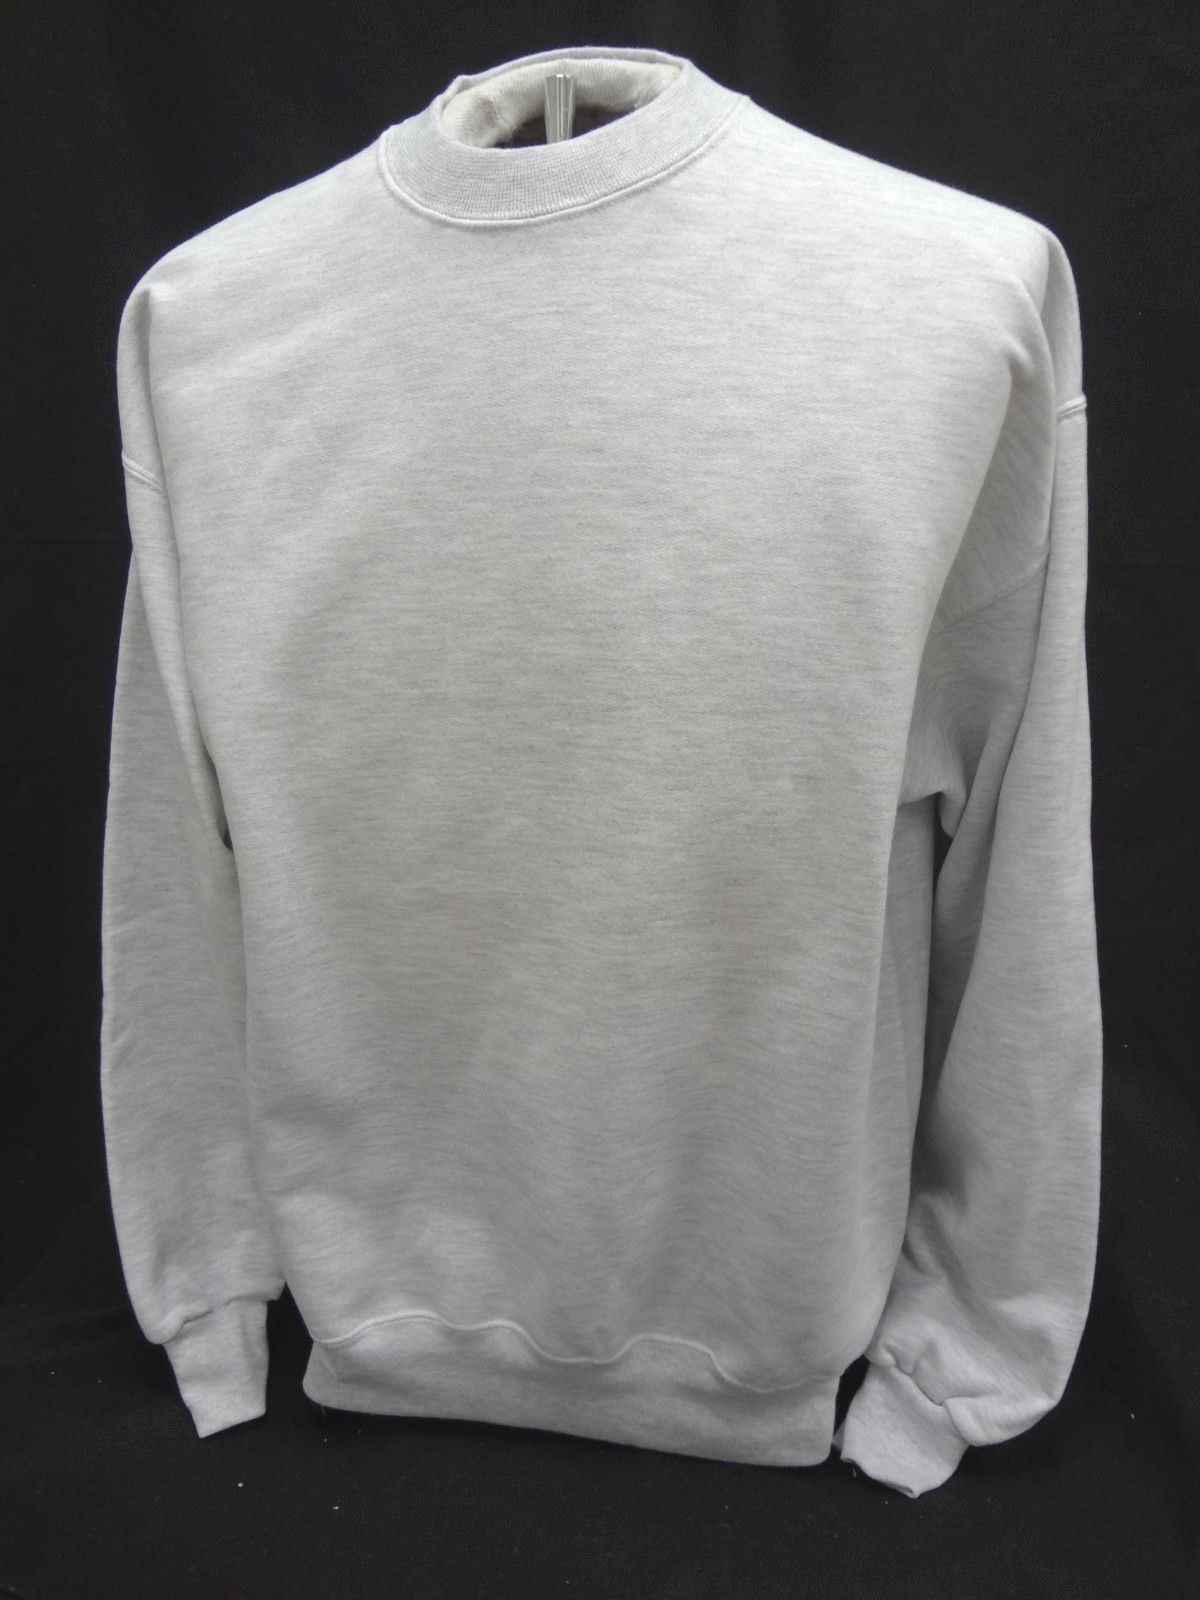 Primary image for JERZEES SUPER SWEATS Crewneck Long Sleeve Sweatshirt GRAY ~Size ADULT 2XL ~NWOT